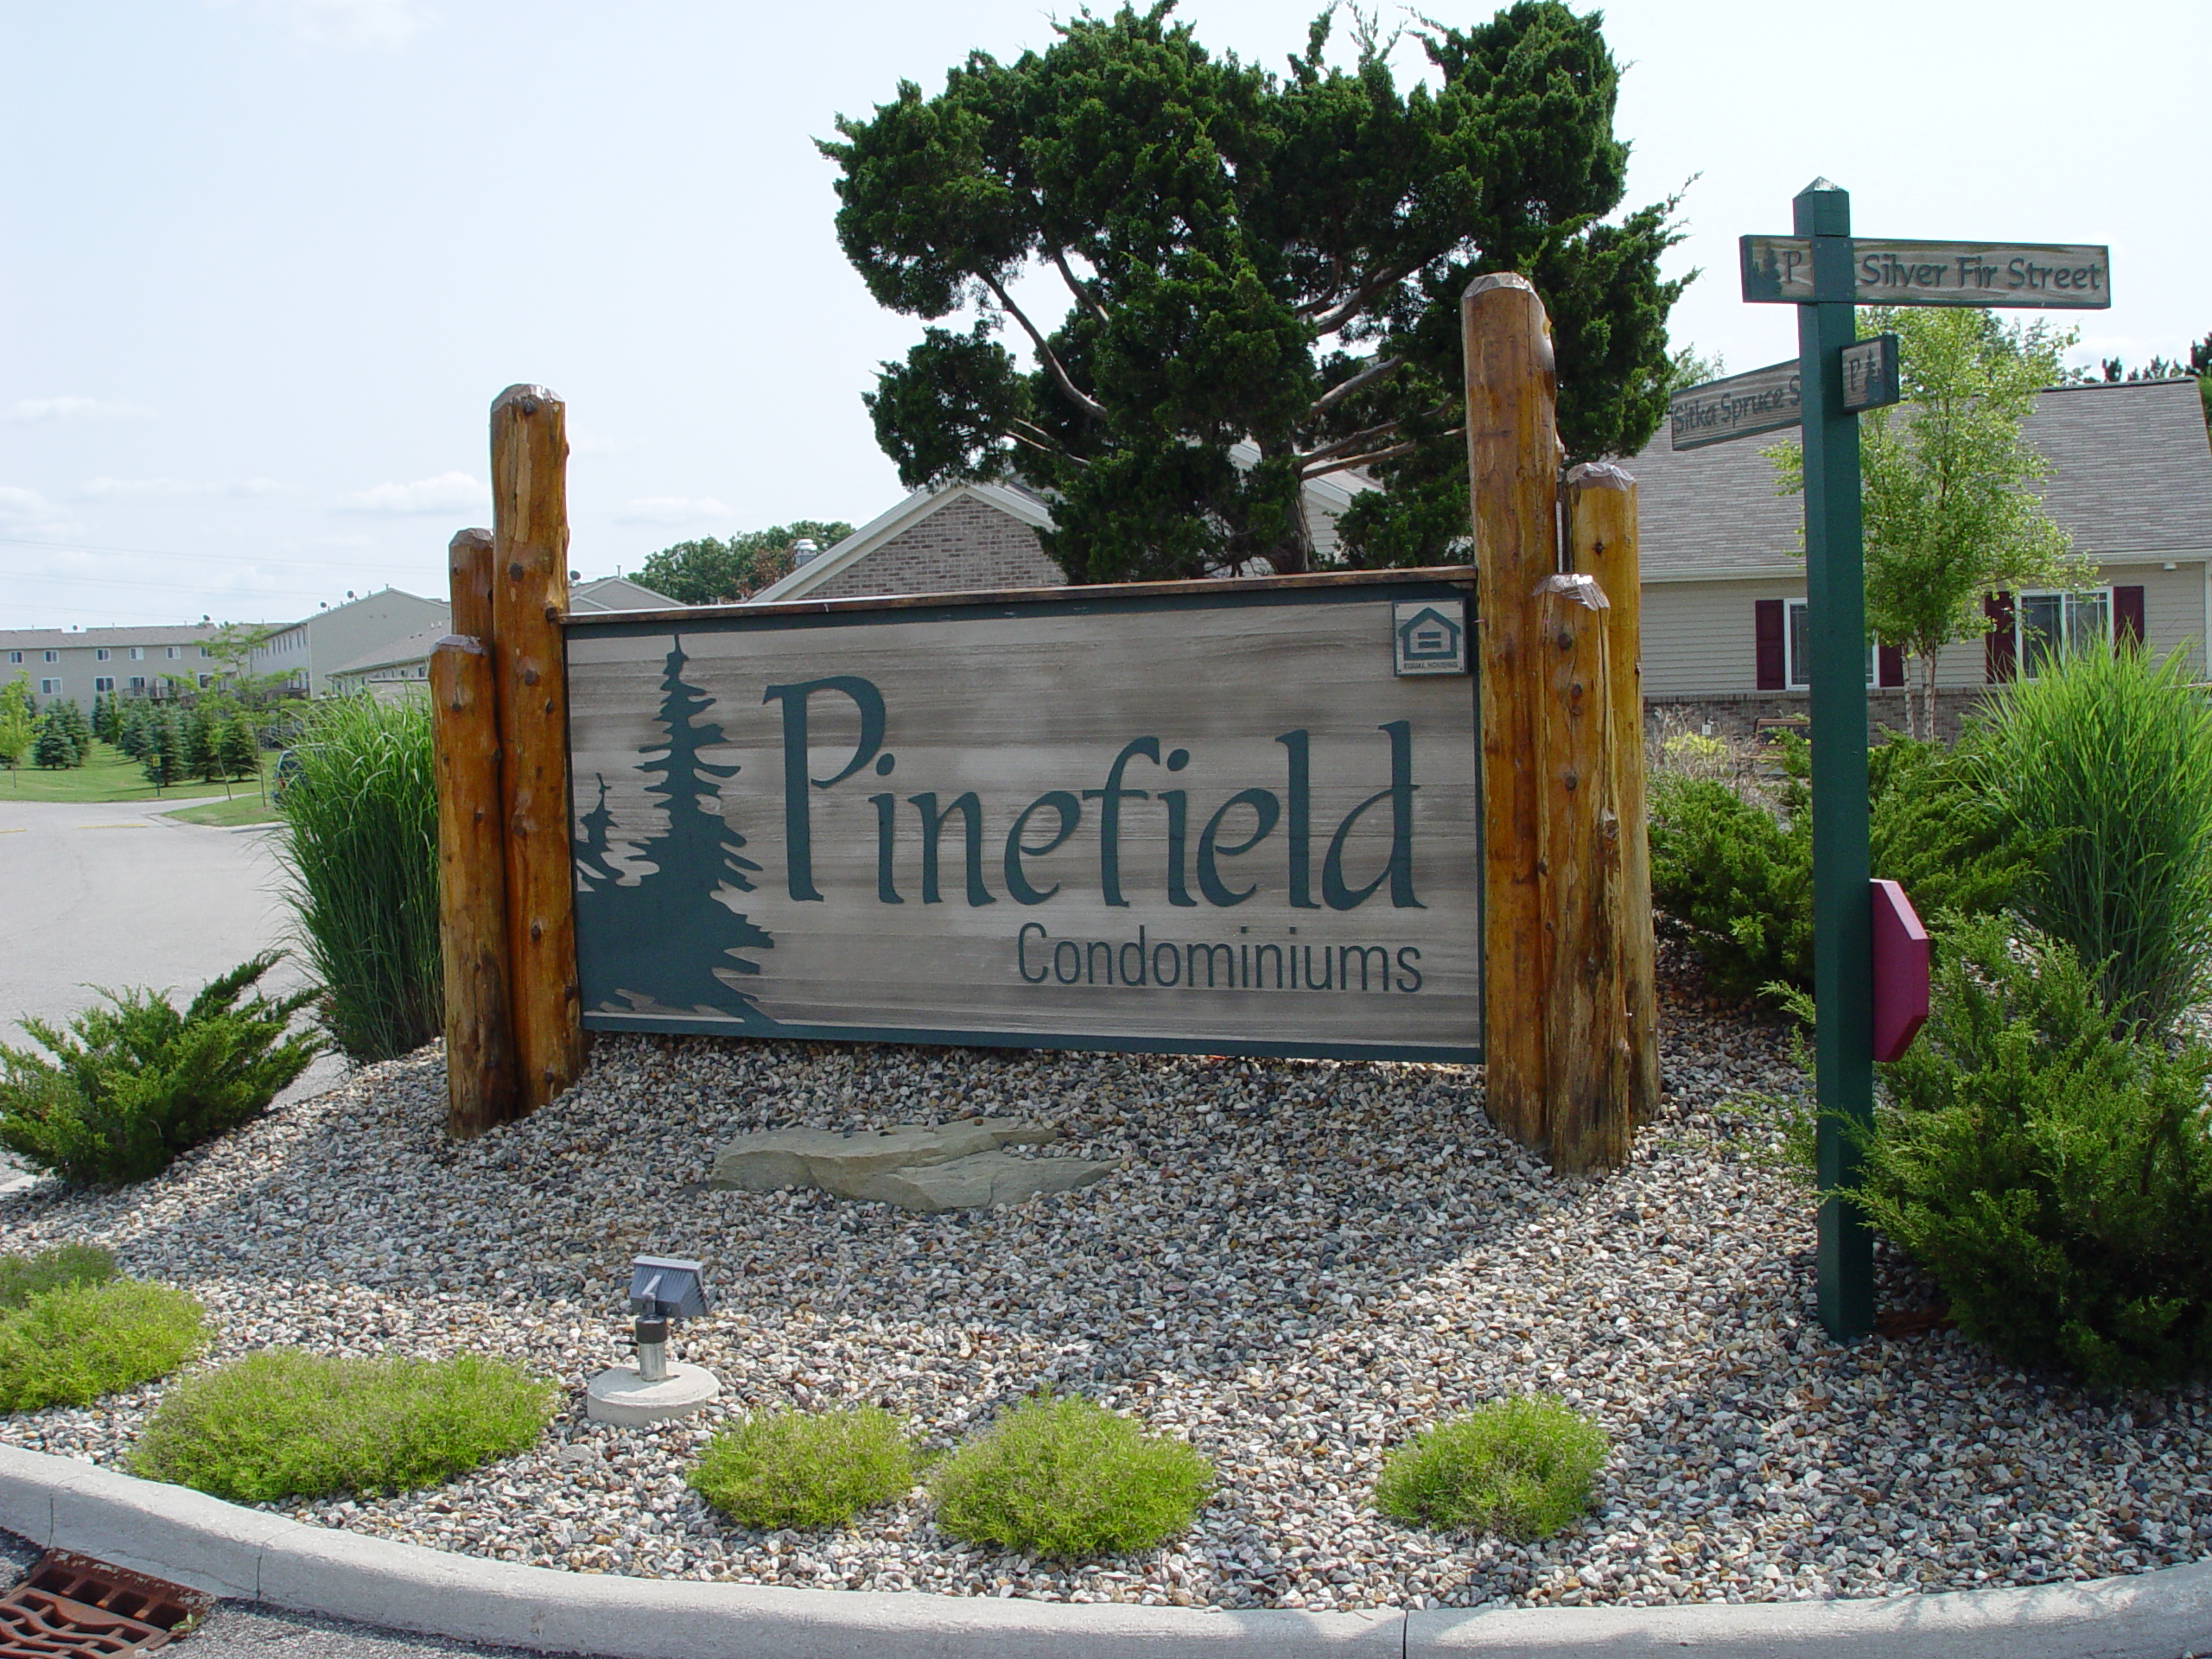 Pinefield Condominiums